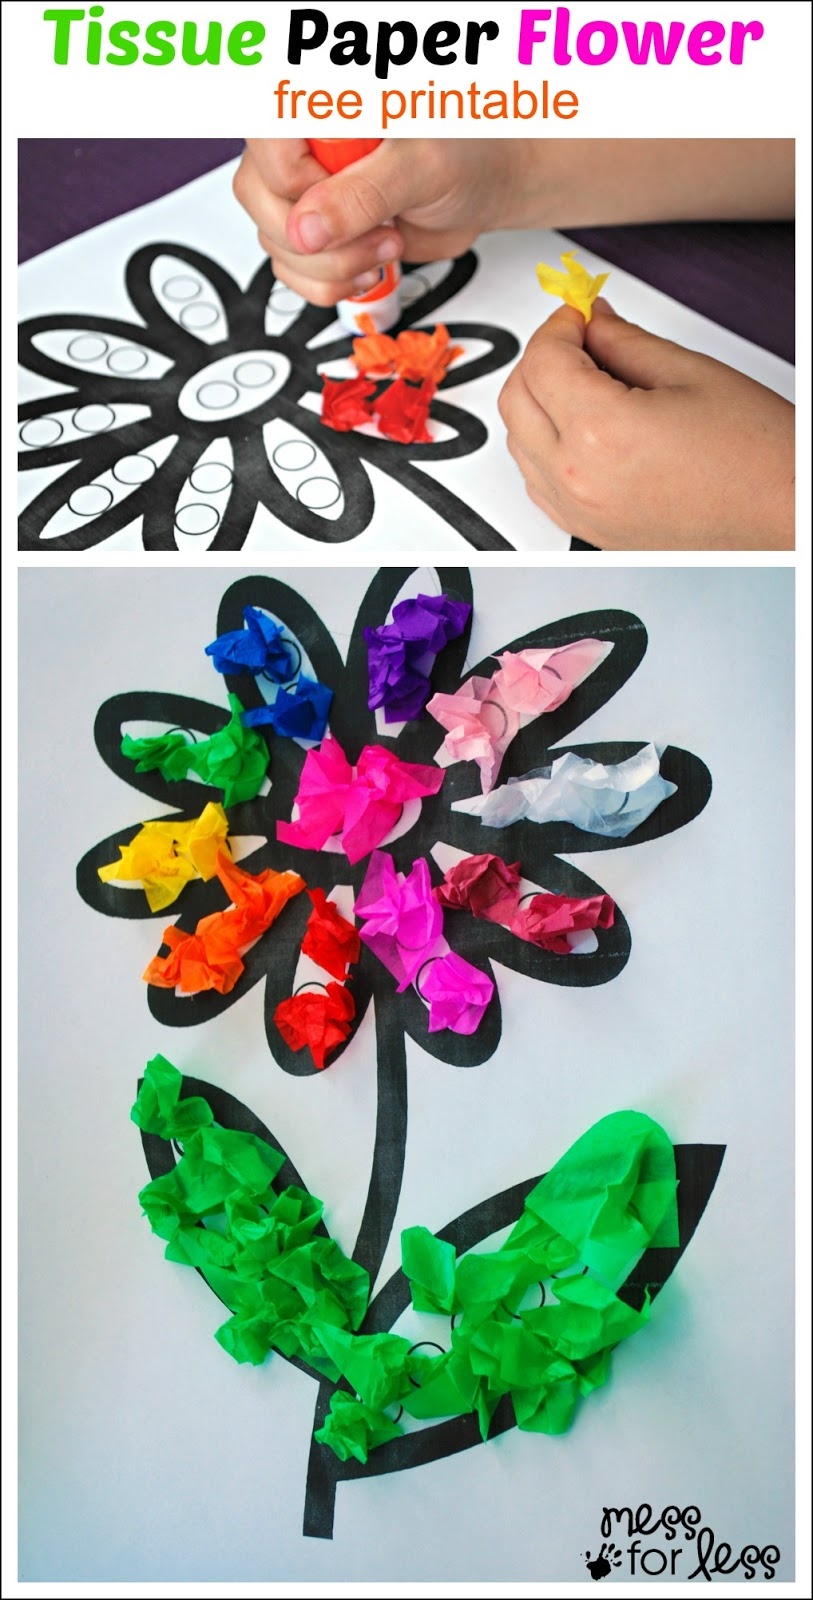 Tissue paper flower art activity mess for less tissue paper flower art activity mightylinksfo